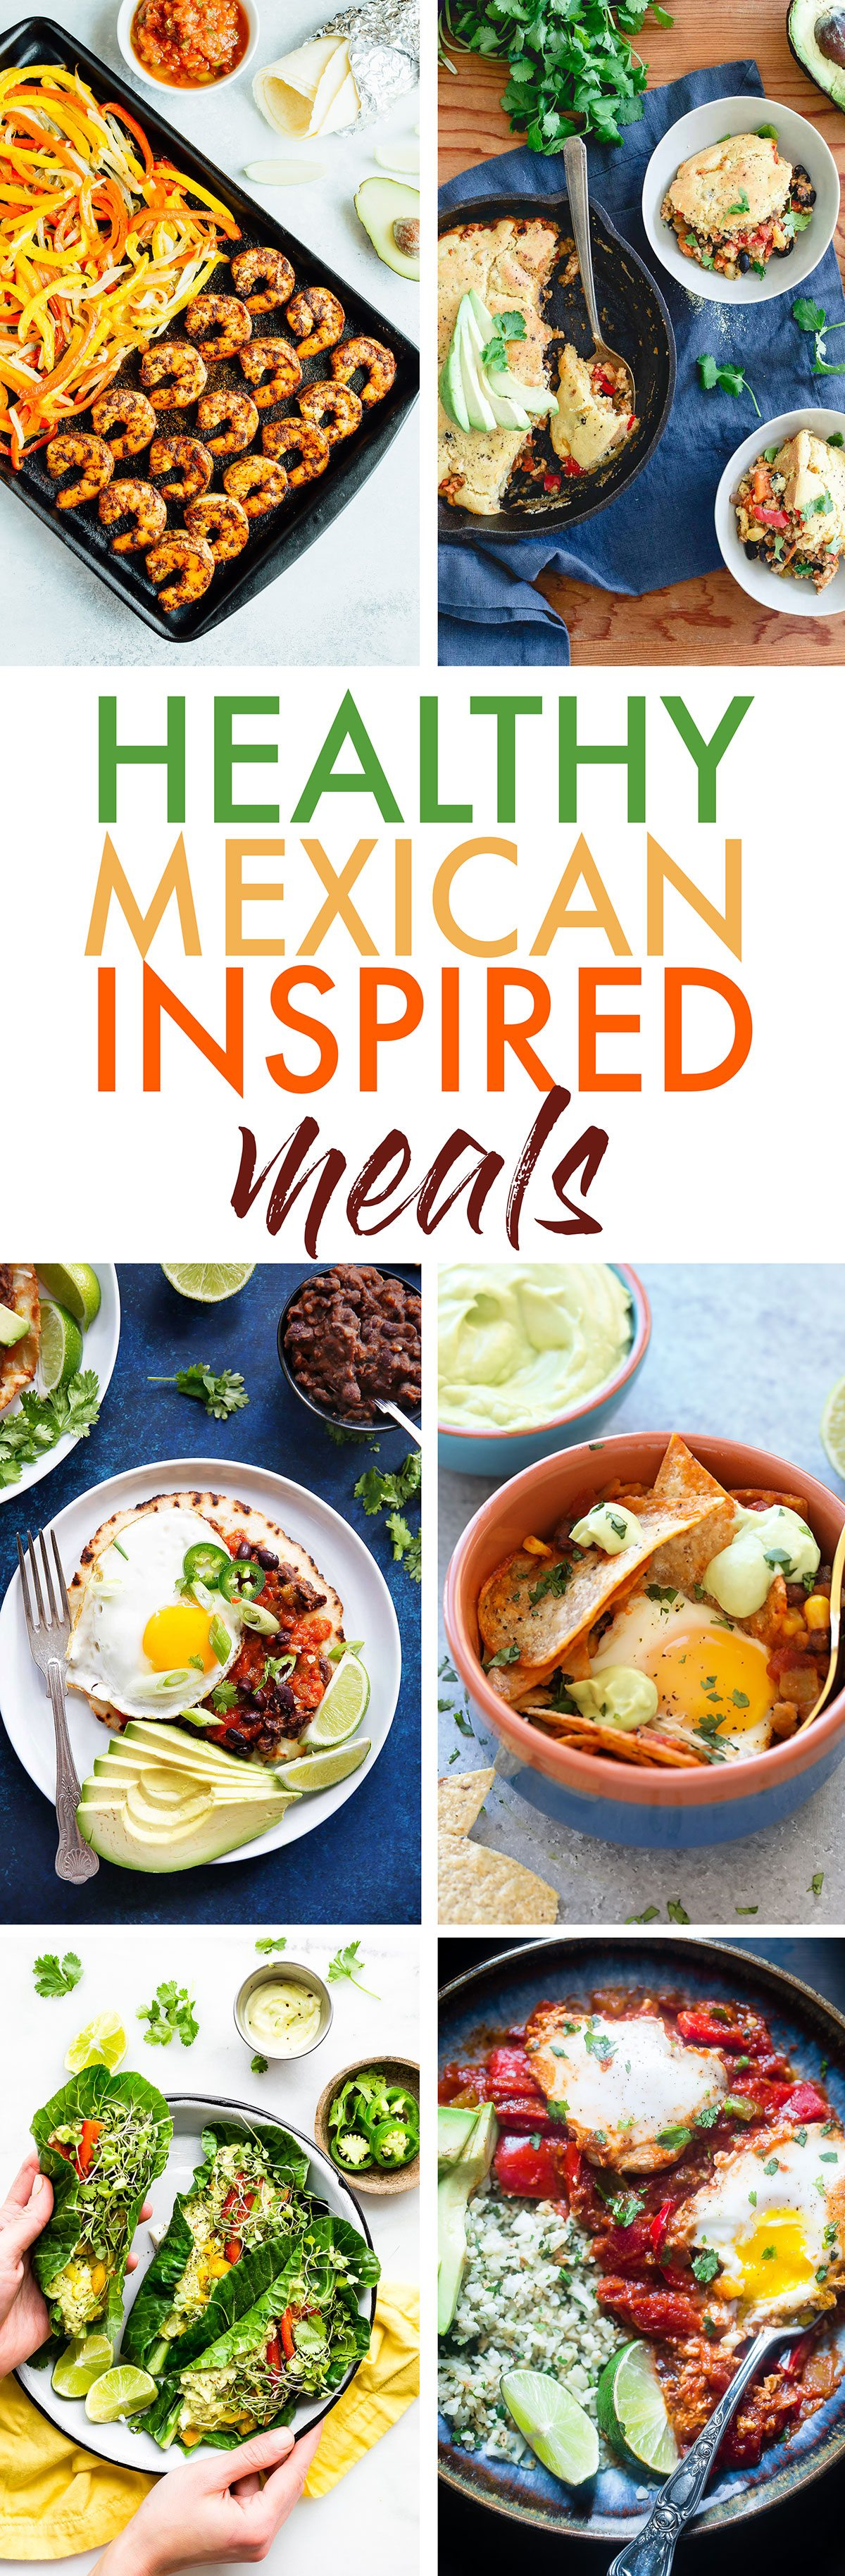 Healthy Mexican Inspired Meals - Lexi's Clean Kitchen